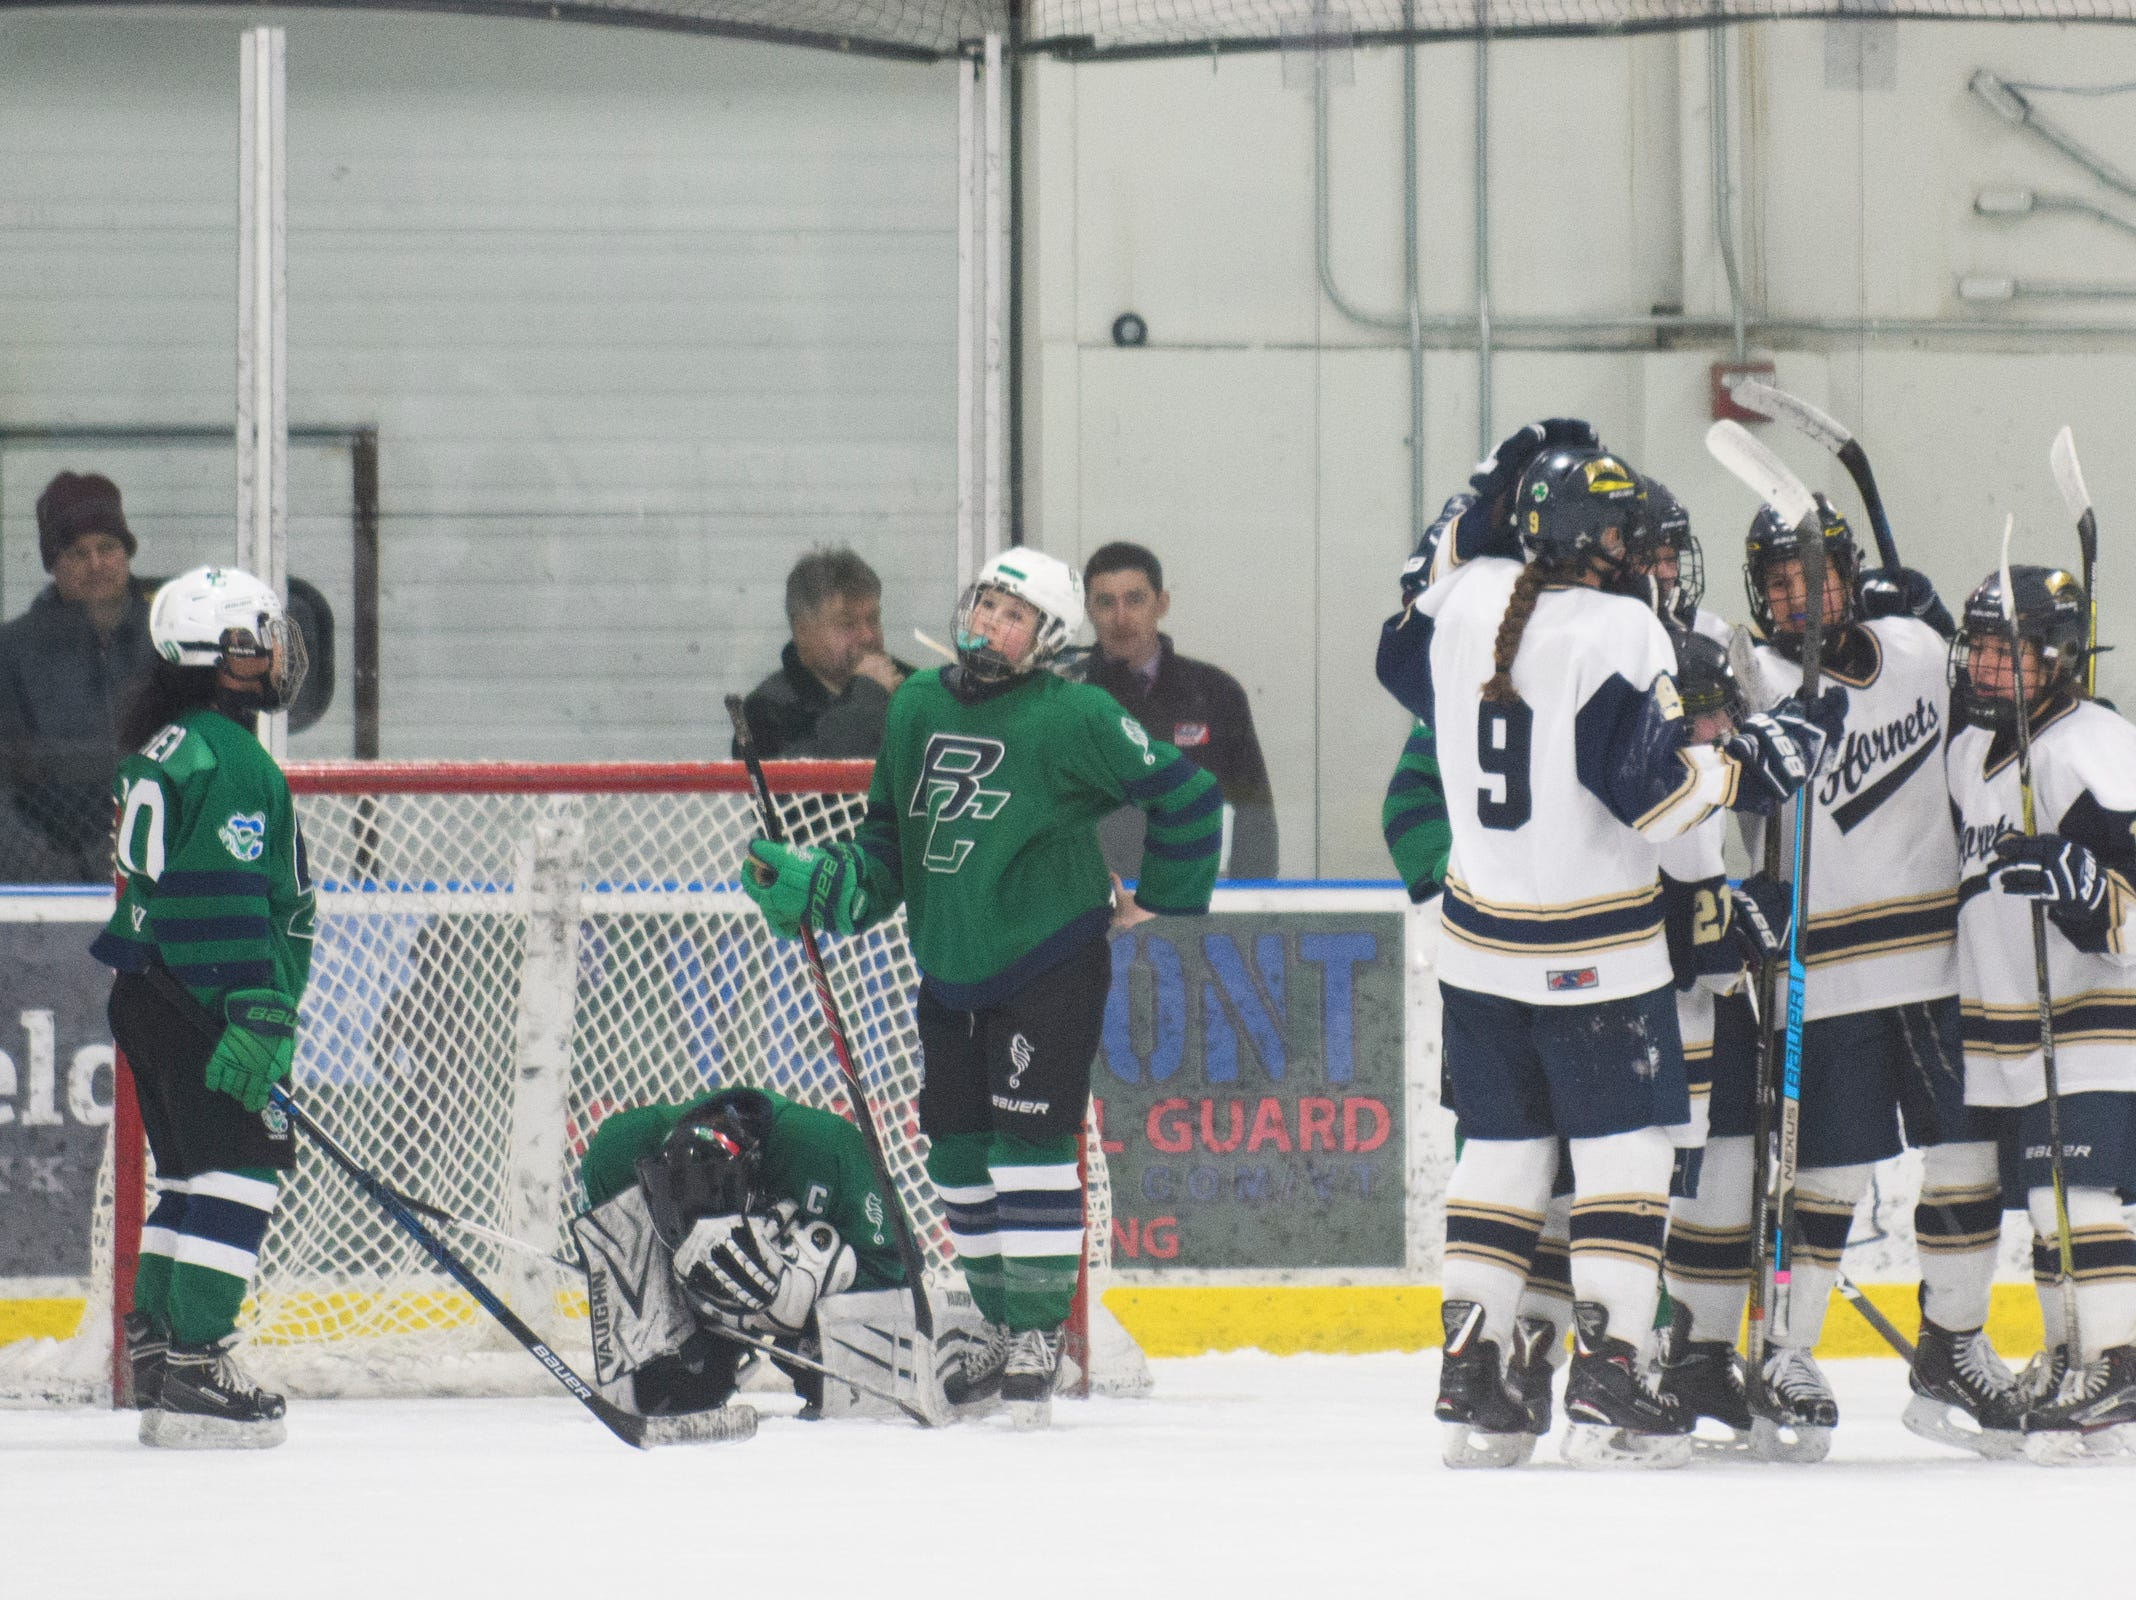 Essex celebrates a goal during the girls semi final hockey game between the Burlington/Colchester Sea Lakers vs. Essex Hornets at Essex skating rink on Saturday afternoon March 9, 2019 in Essex, Vermont.